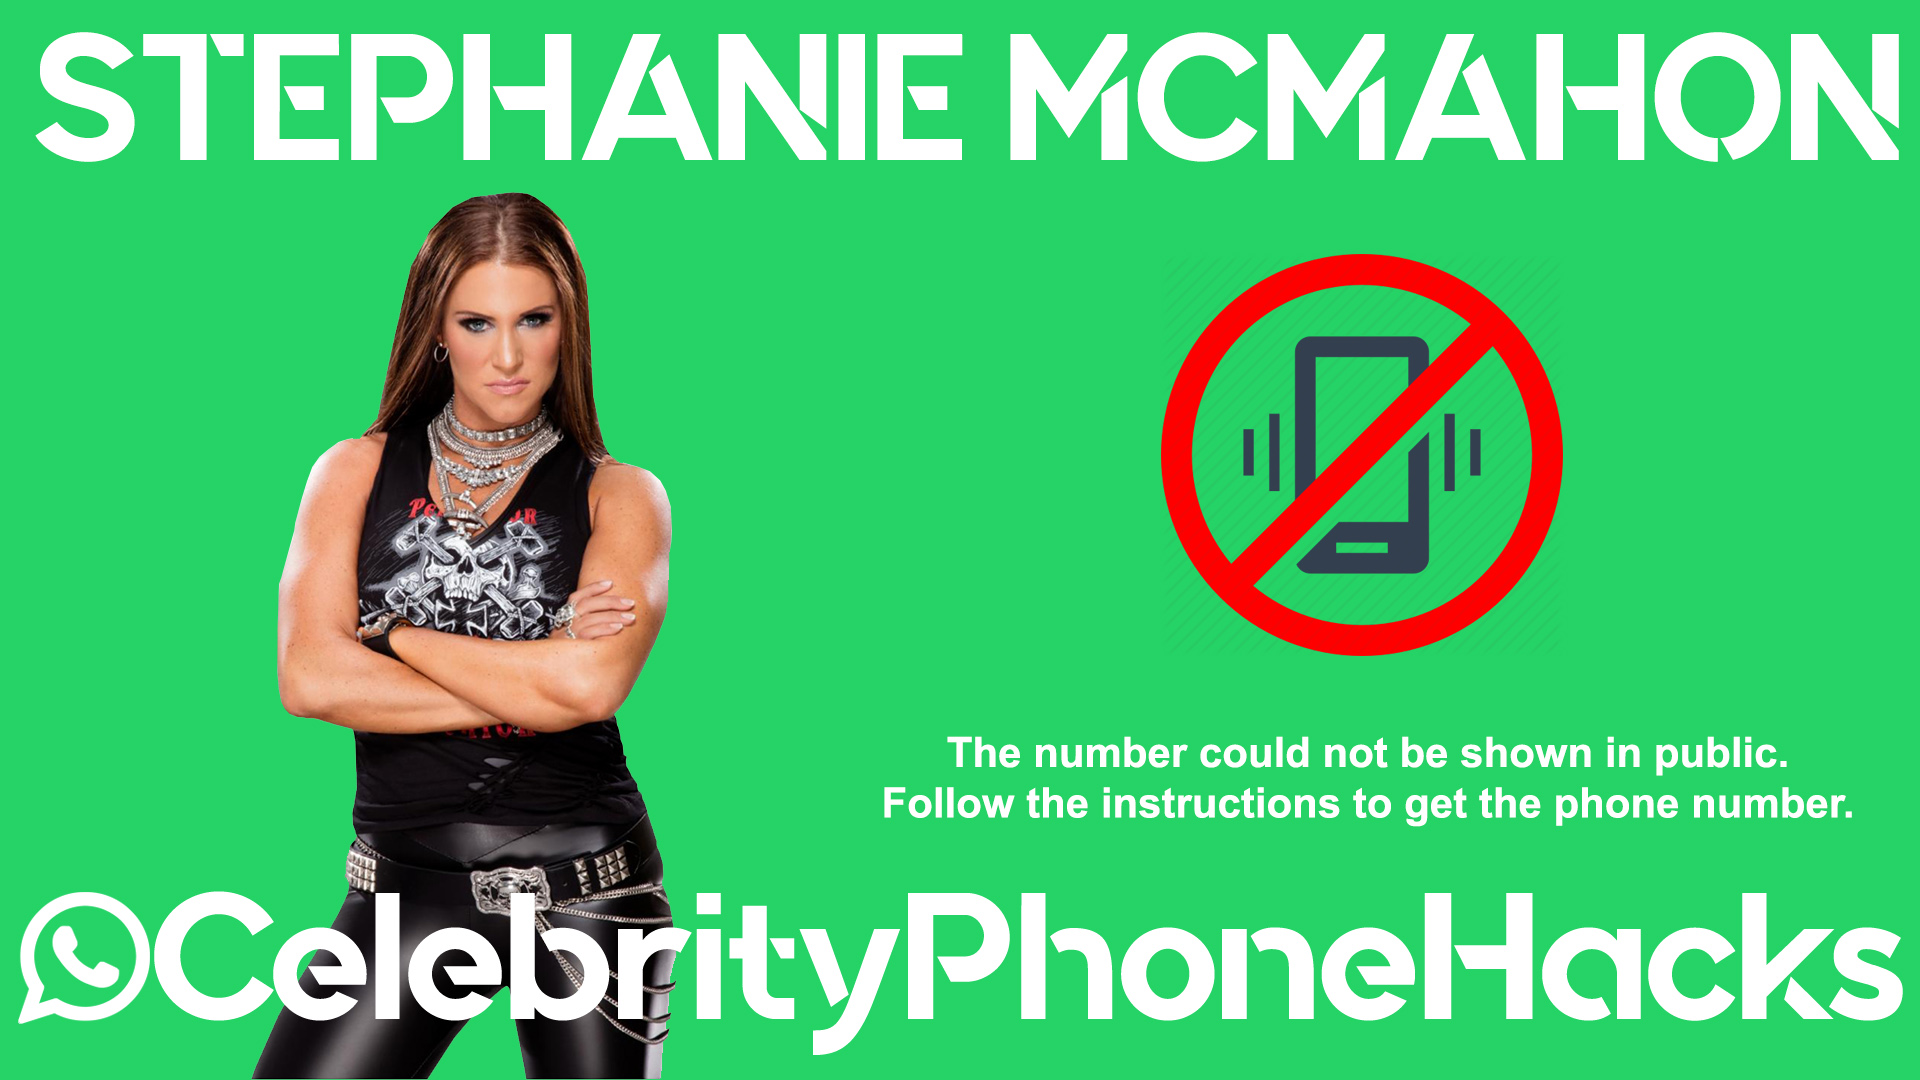 Stephanie McMahon real phone number 2019 whatsapp hacked leaked